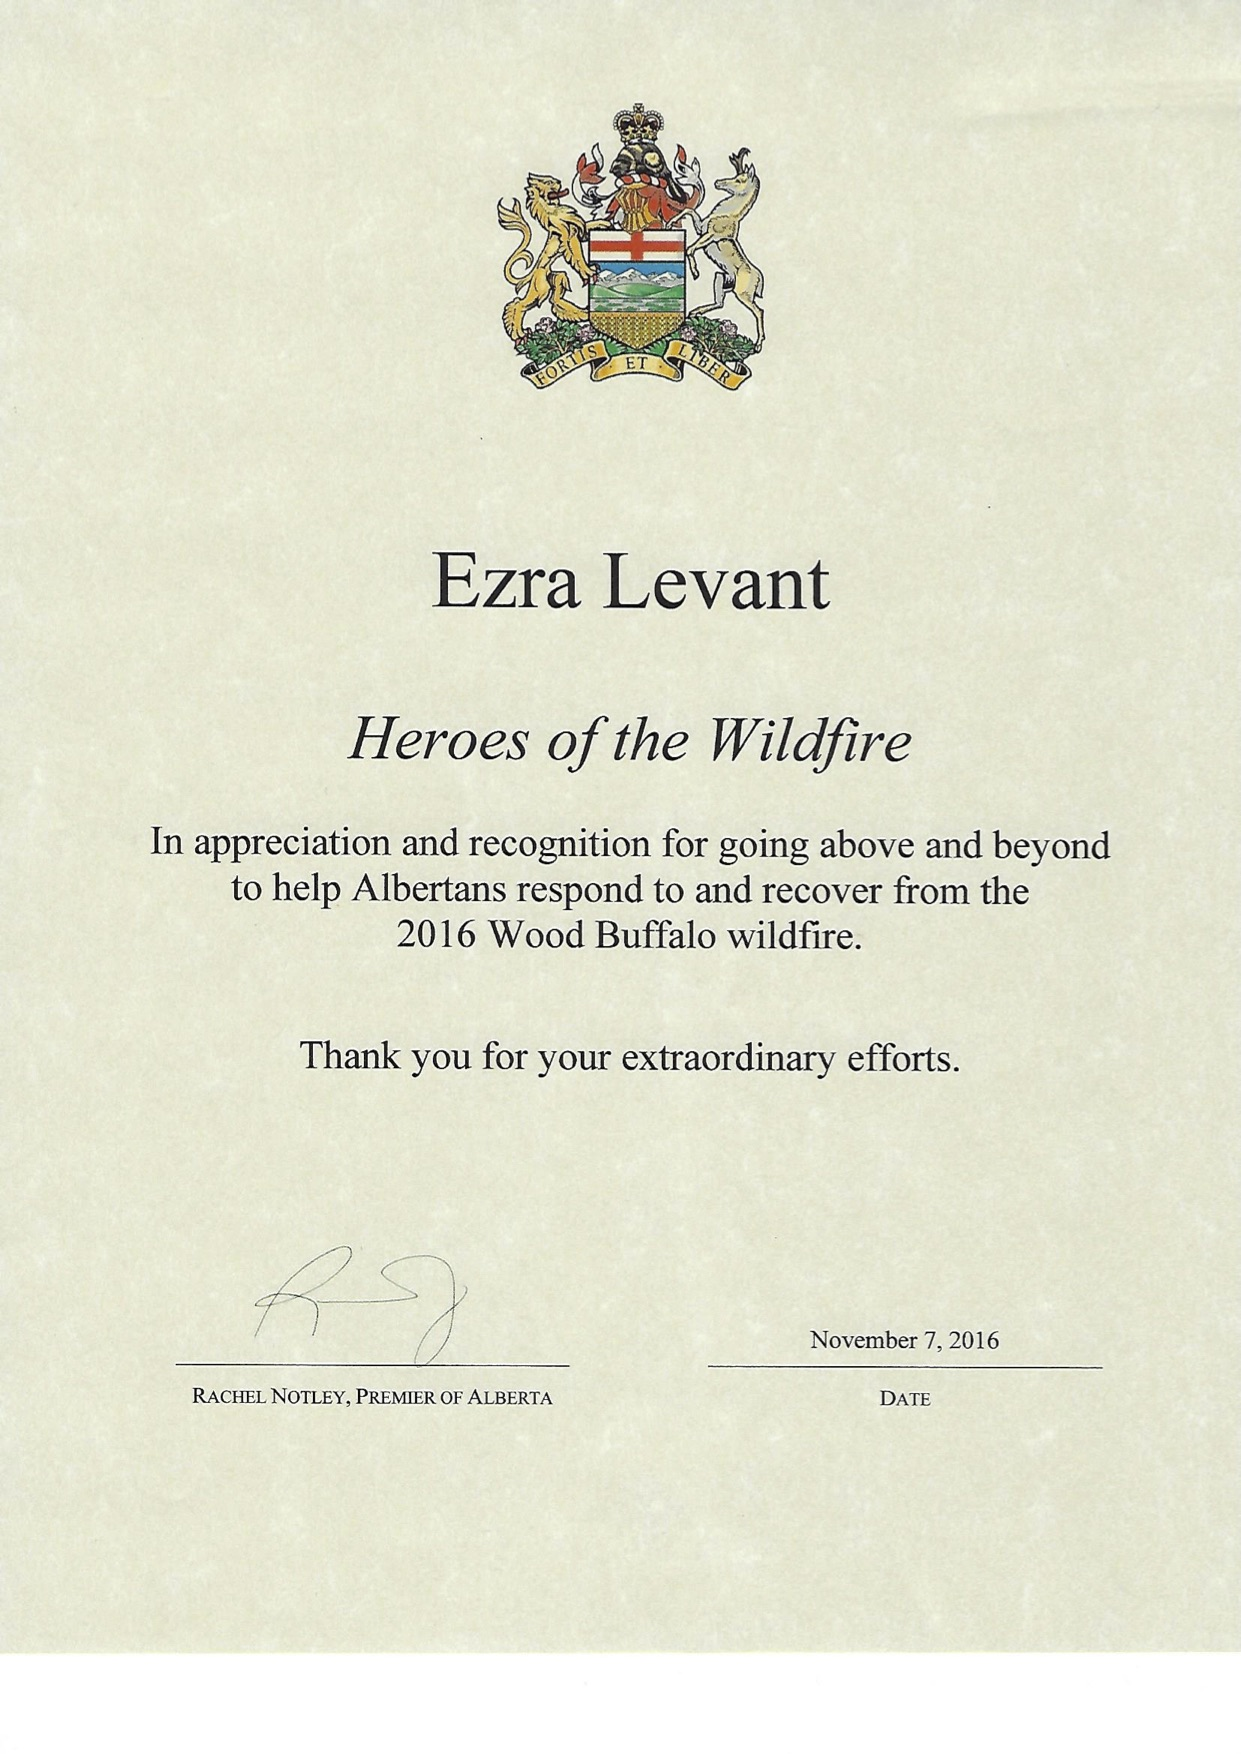 Heros_of_the_Wildfire_Cert.jpg